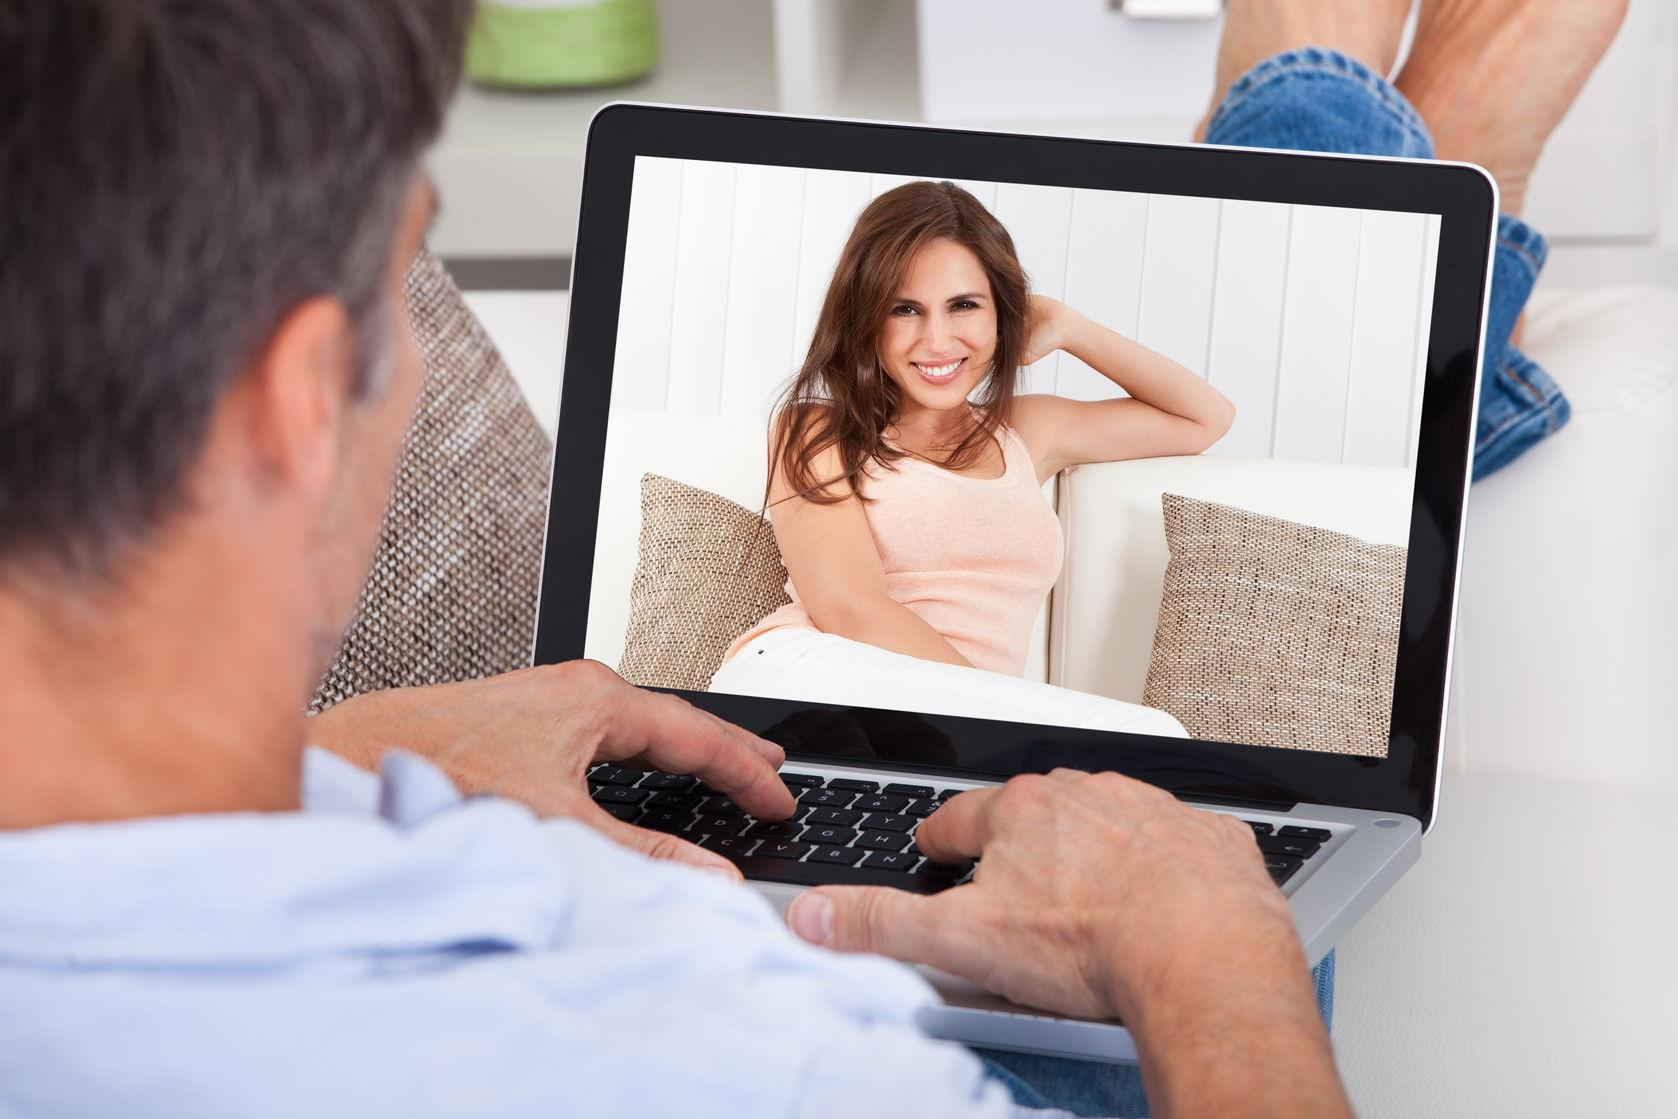 How to message people on online dating sites